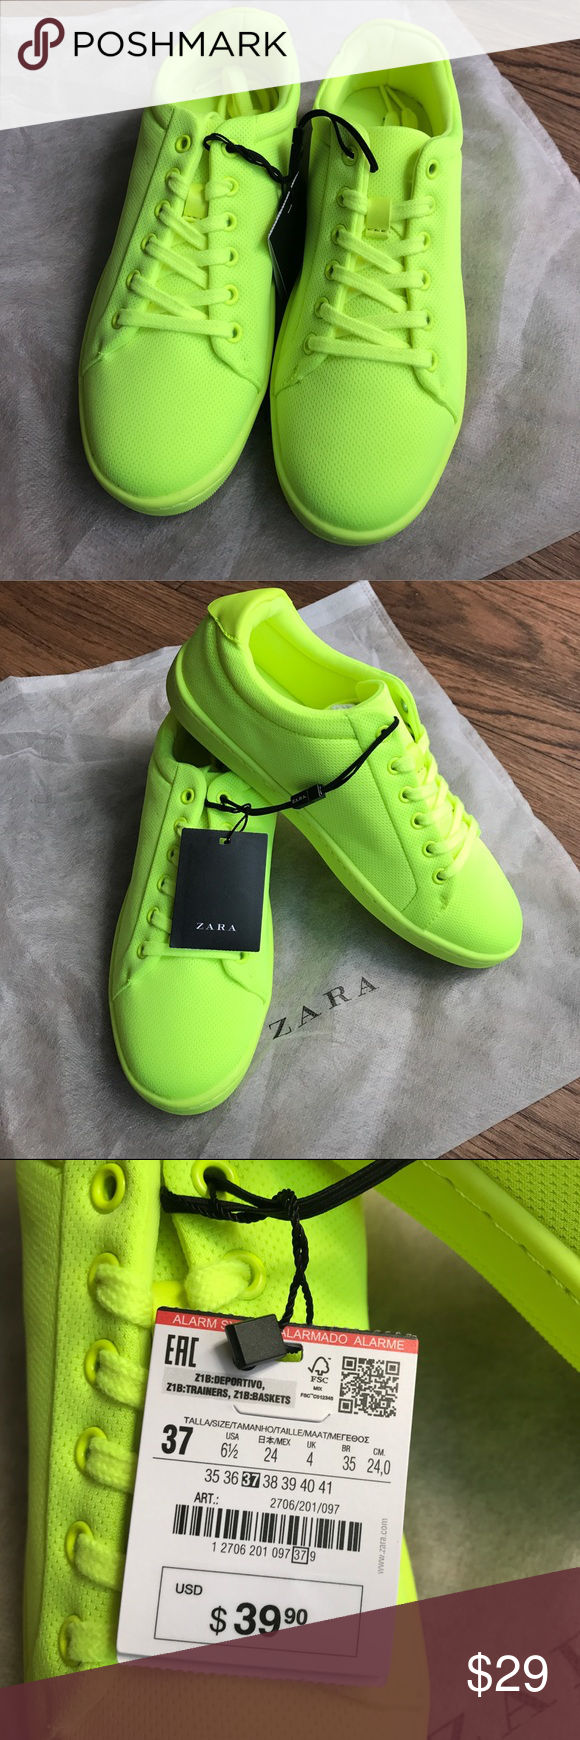 zara neon sneakers authentic 032a3 344f3